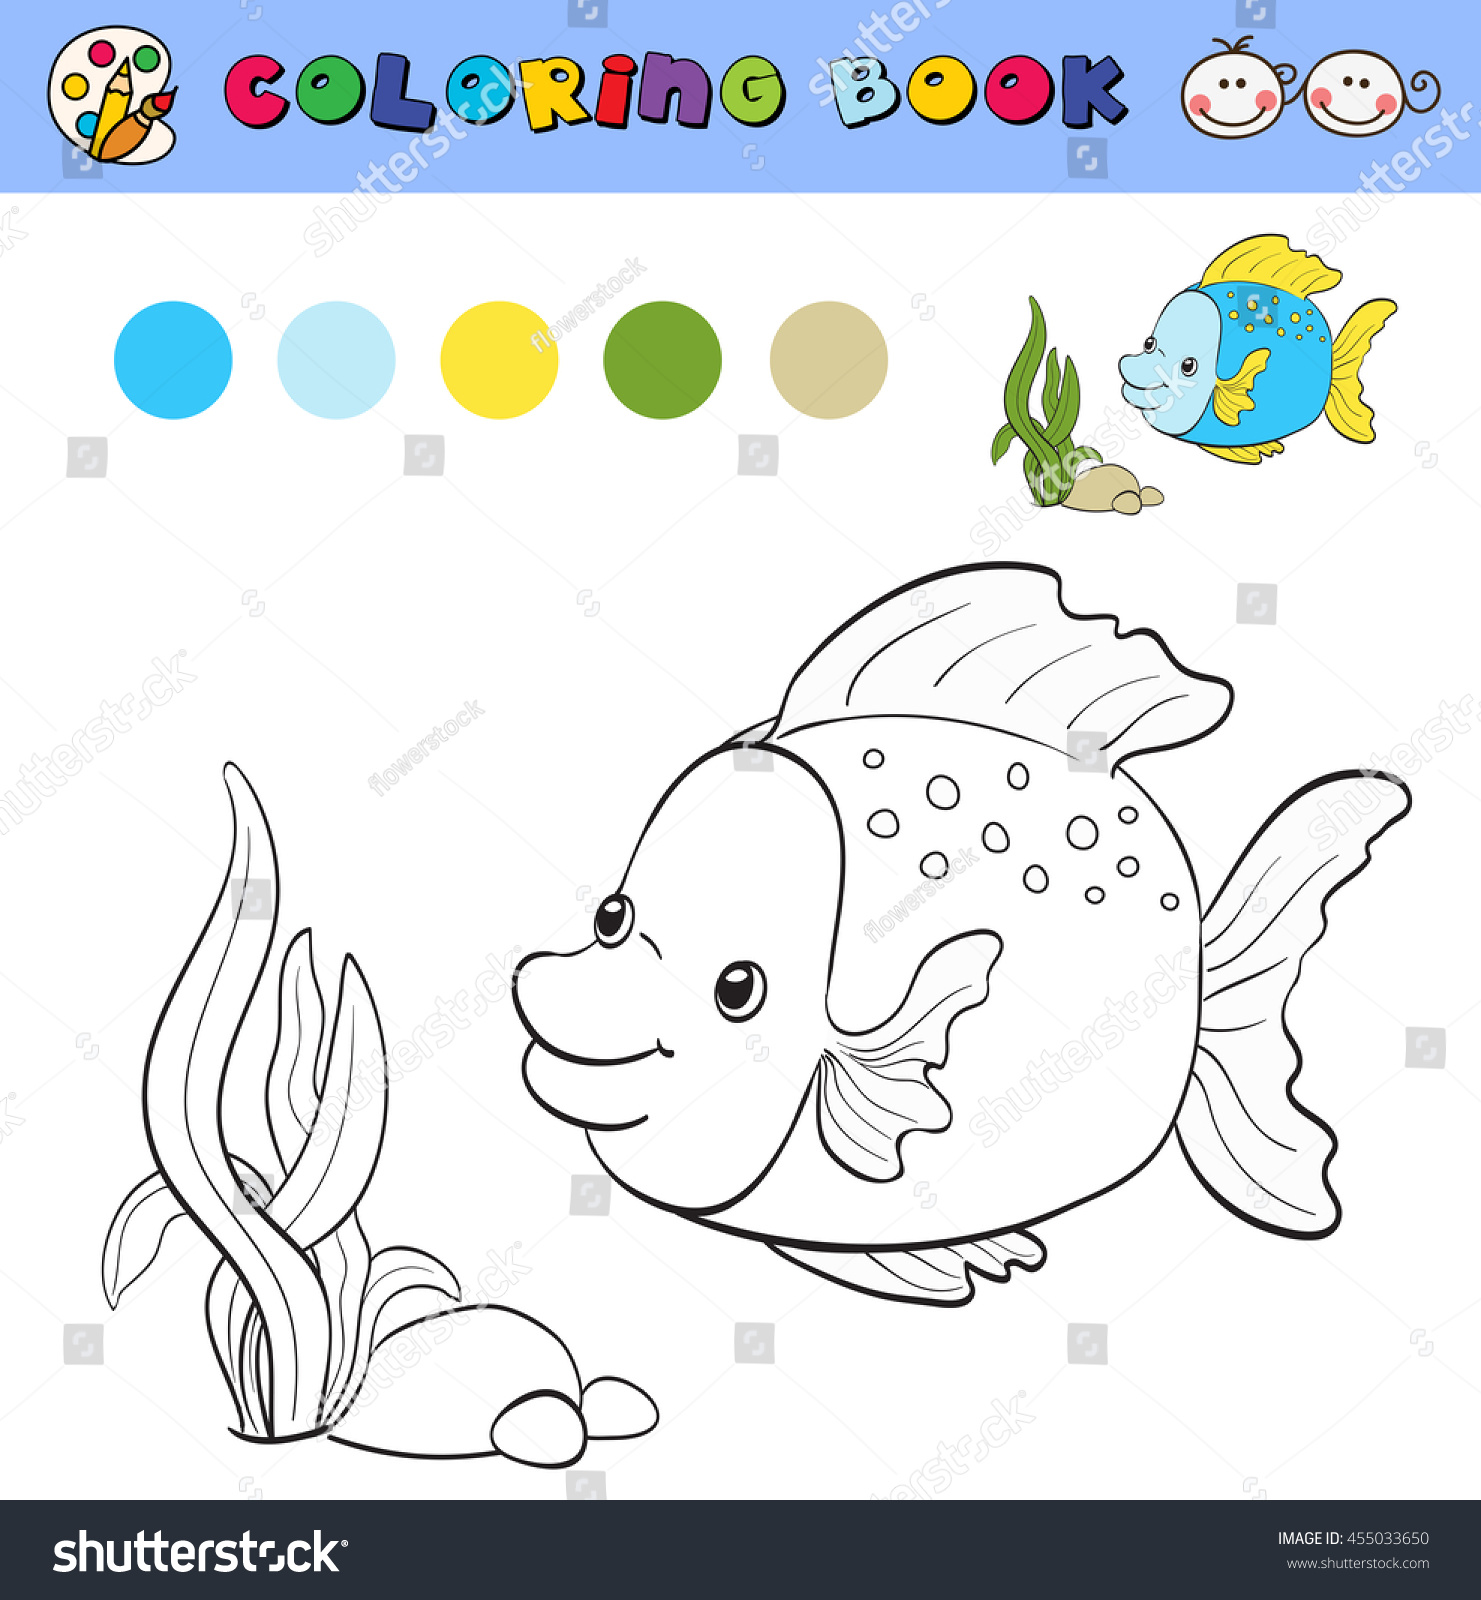 Coloring Book Page Template With Tropical Fish And Plants Color Samples Vector Illustration